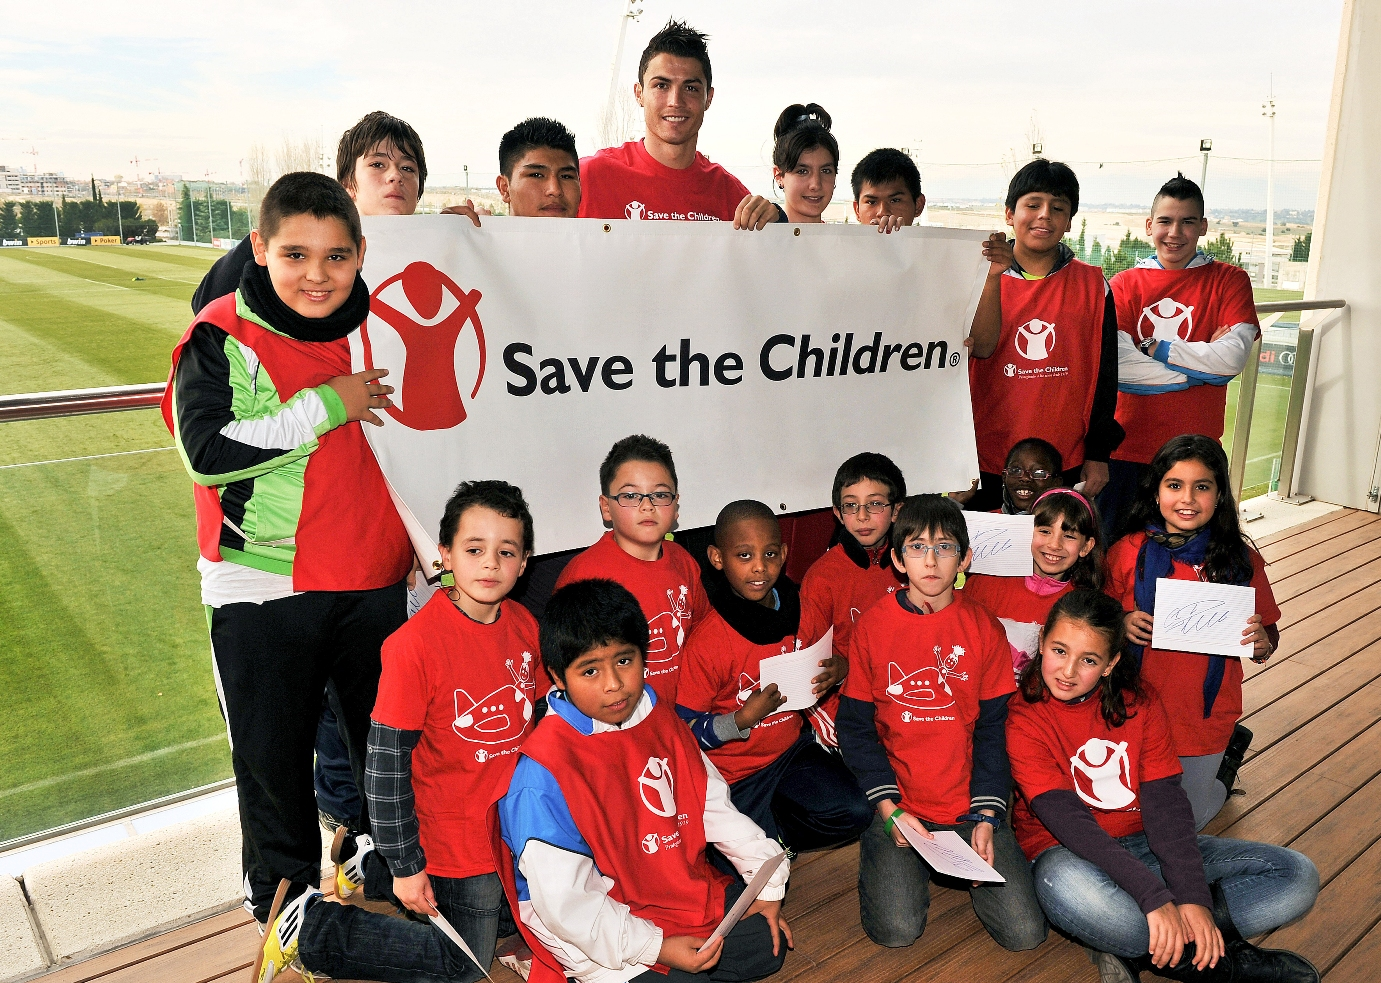 Cristiano Ronaldo Kicks Off the New Year as Save the Children's New